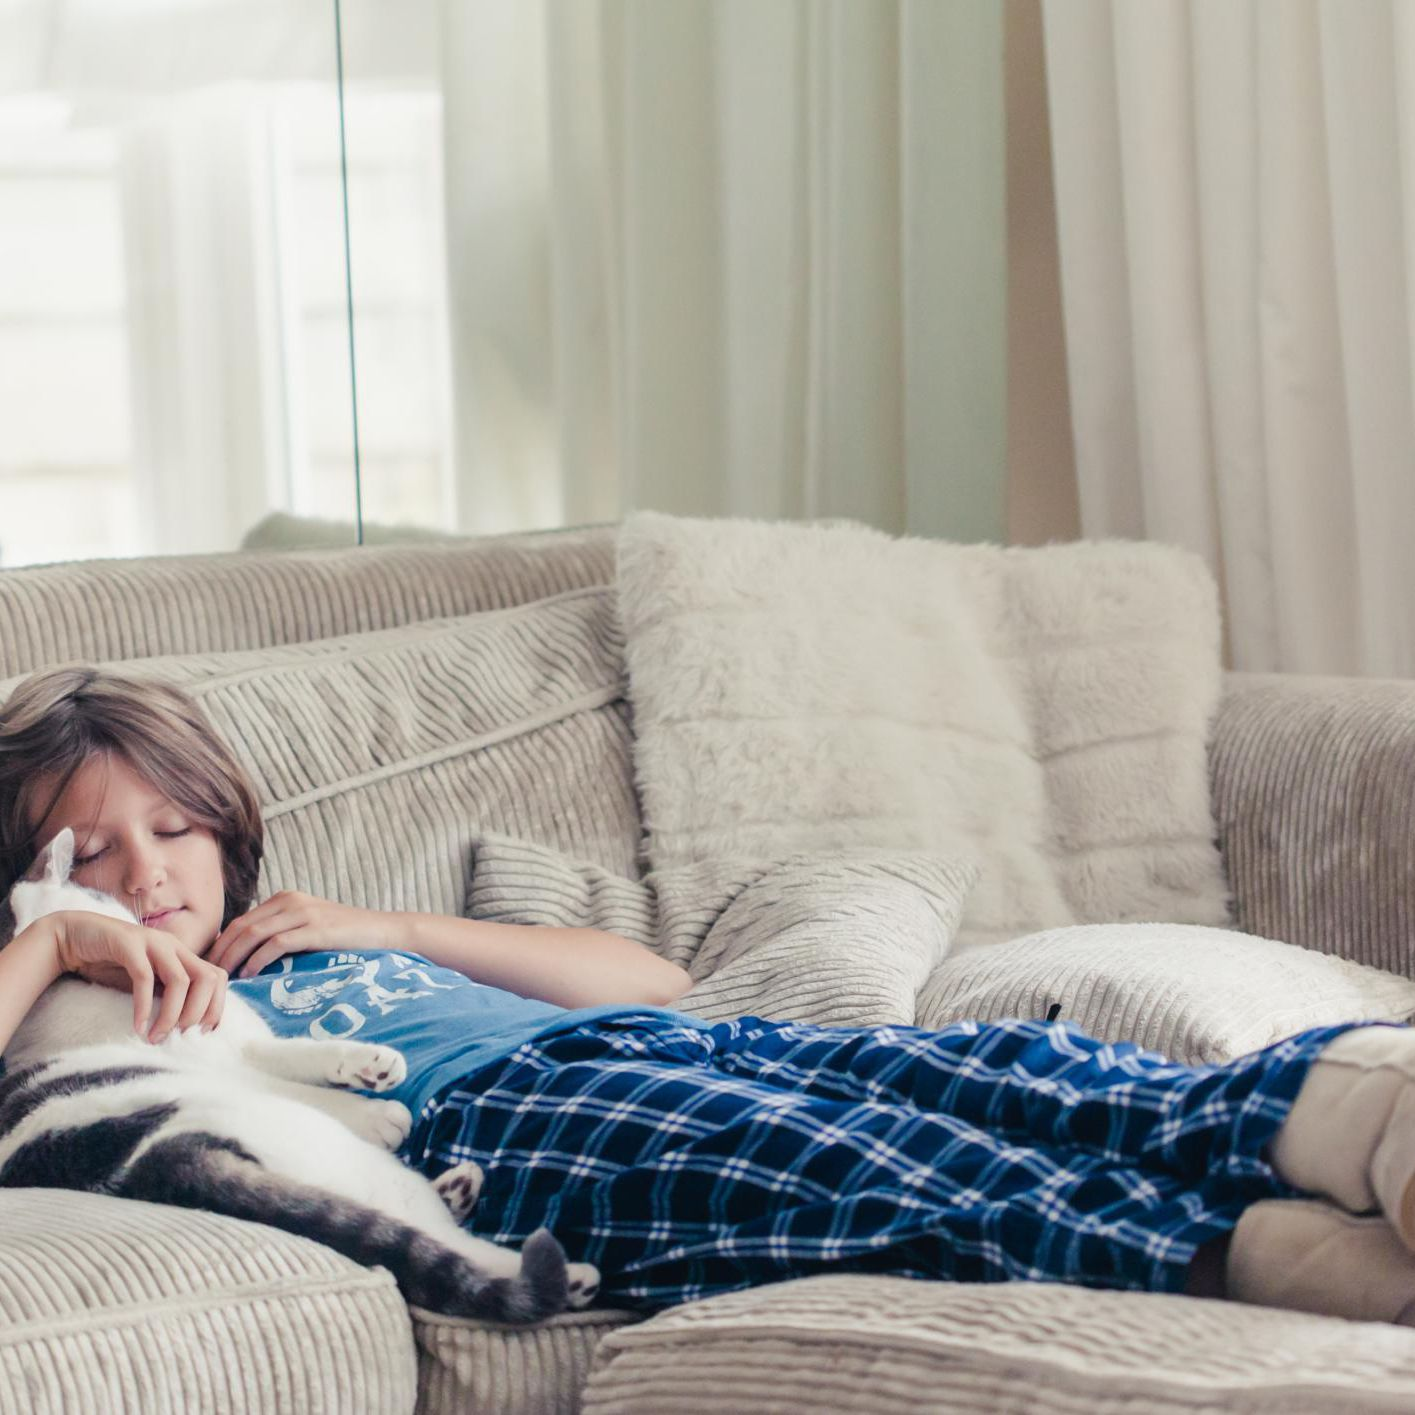 When Is a Child Old Enough to Stay Home Alone?